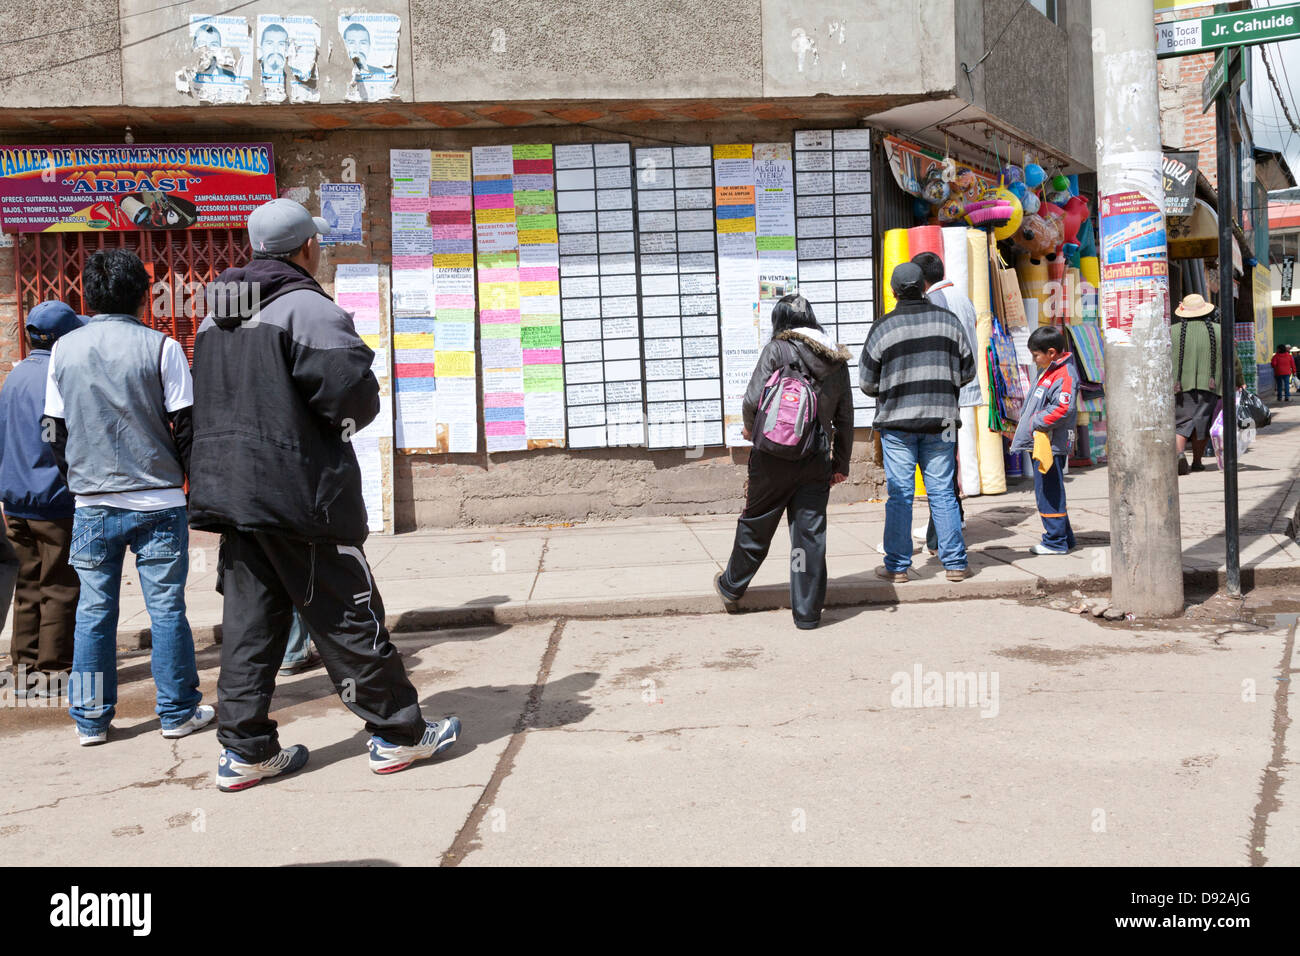 Local peruvians checking signboards for jobs, Puno, peru - Stock Image